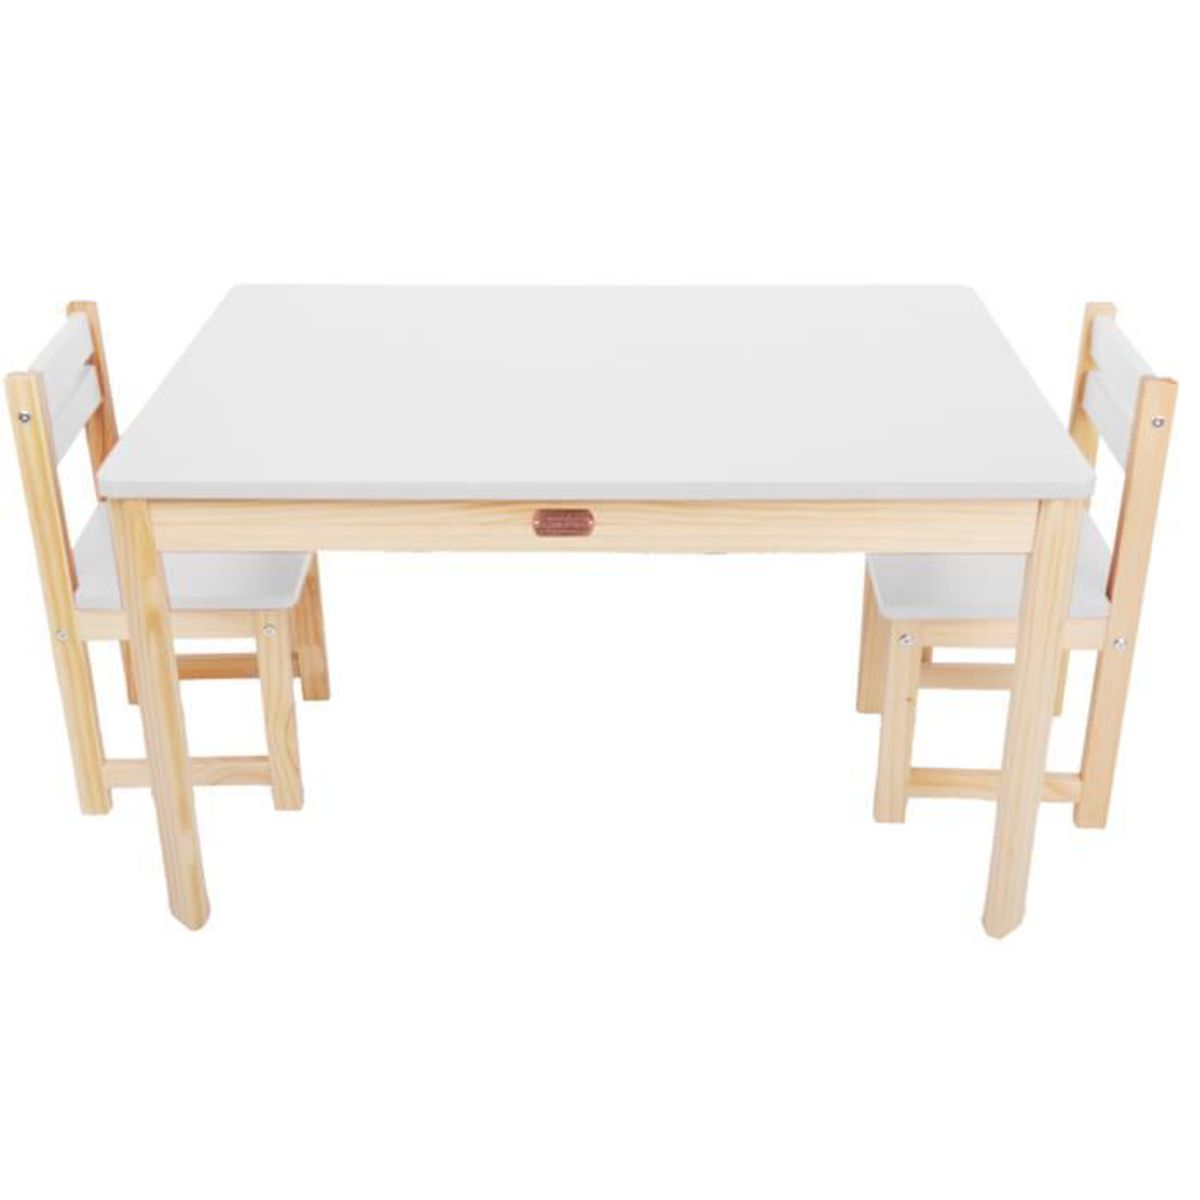 ensemble table rectangulaire et 2 chaises pour enfant en bois coloris blanc. Black Bedroom Furniture Sets. Home Design Ideas